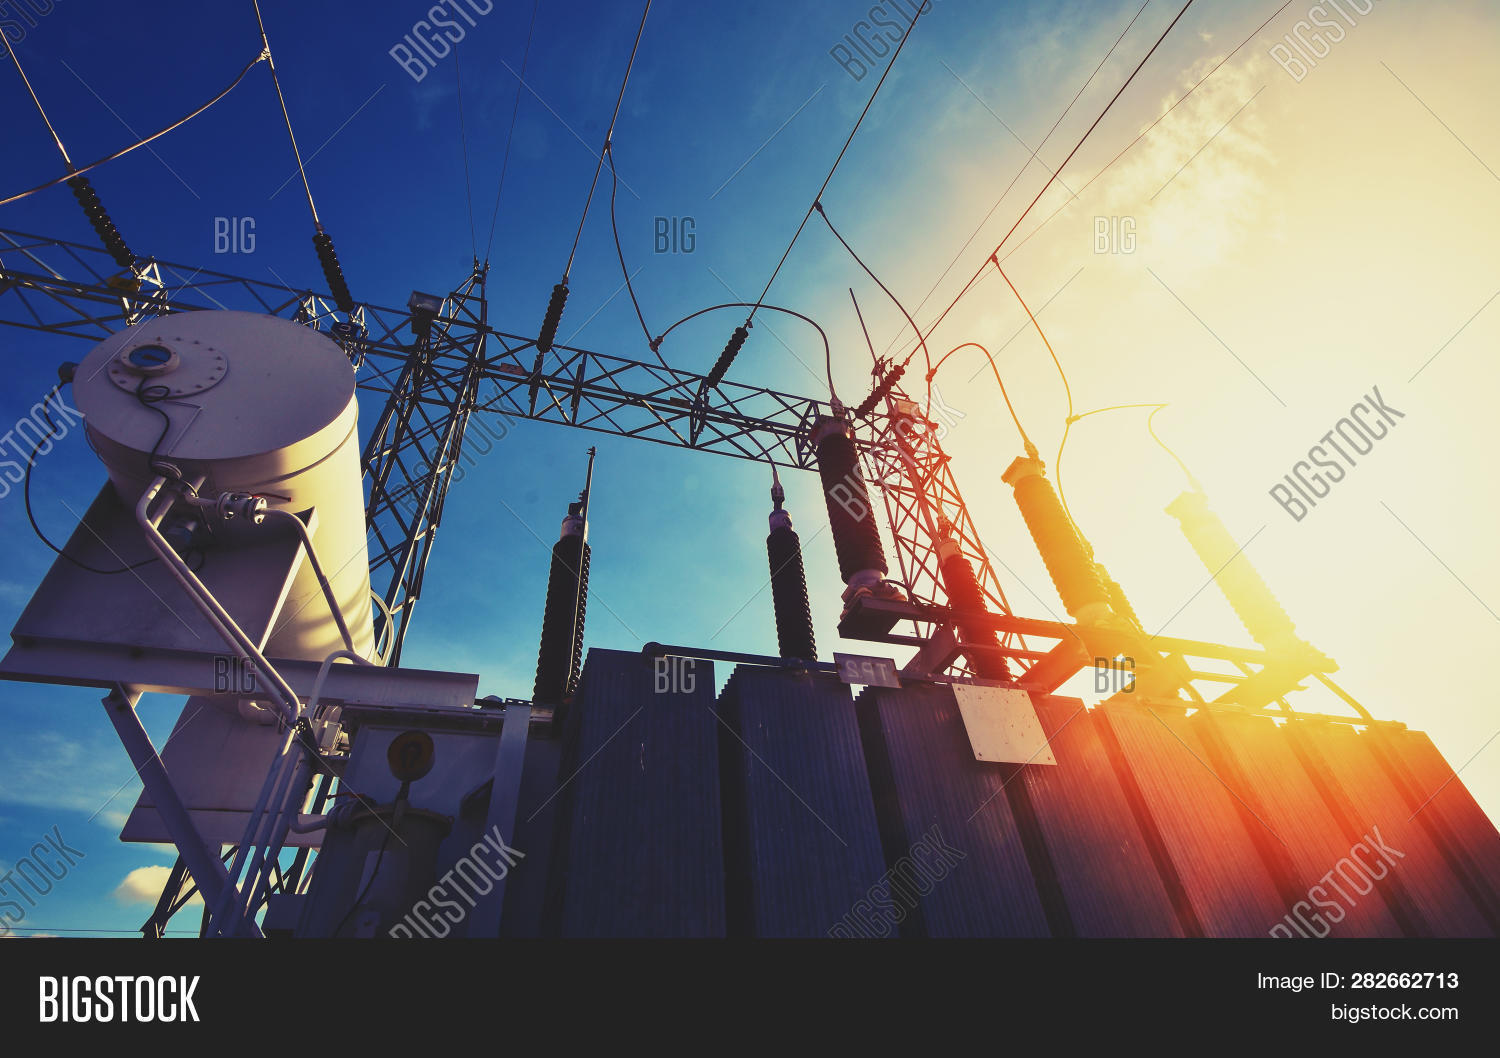 architecture,bright,cable,communication,conductor,construction,corporate,current,danger,dielectric,distribution,electric,electricity,energy,energy-supply,engineering,environment,equipment,facility,factory,generator,global-warming,grid,industrial,industry,insulation,megawatt,petrochemical,petroleum,pole,post,power,sky,station,steel,storage,structure,substation,supply,system,technology,tower,transformer,transmission,urban,volt,voltage,watt,wiring